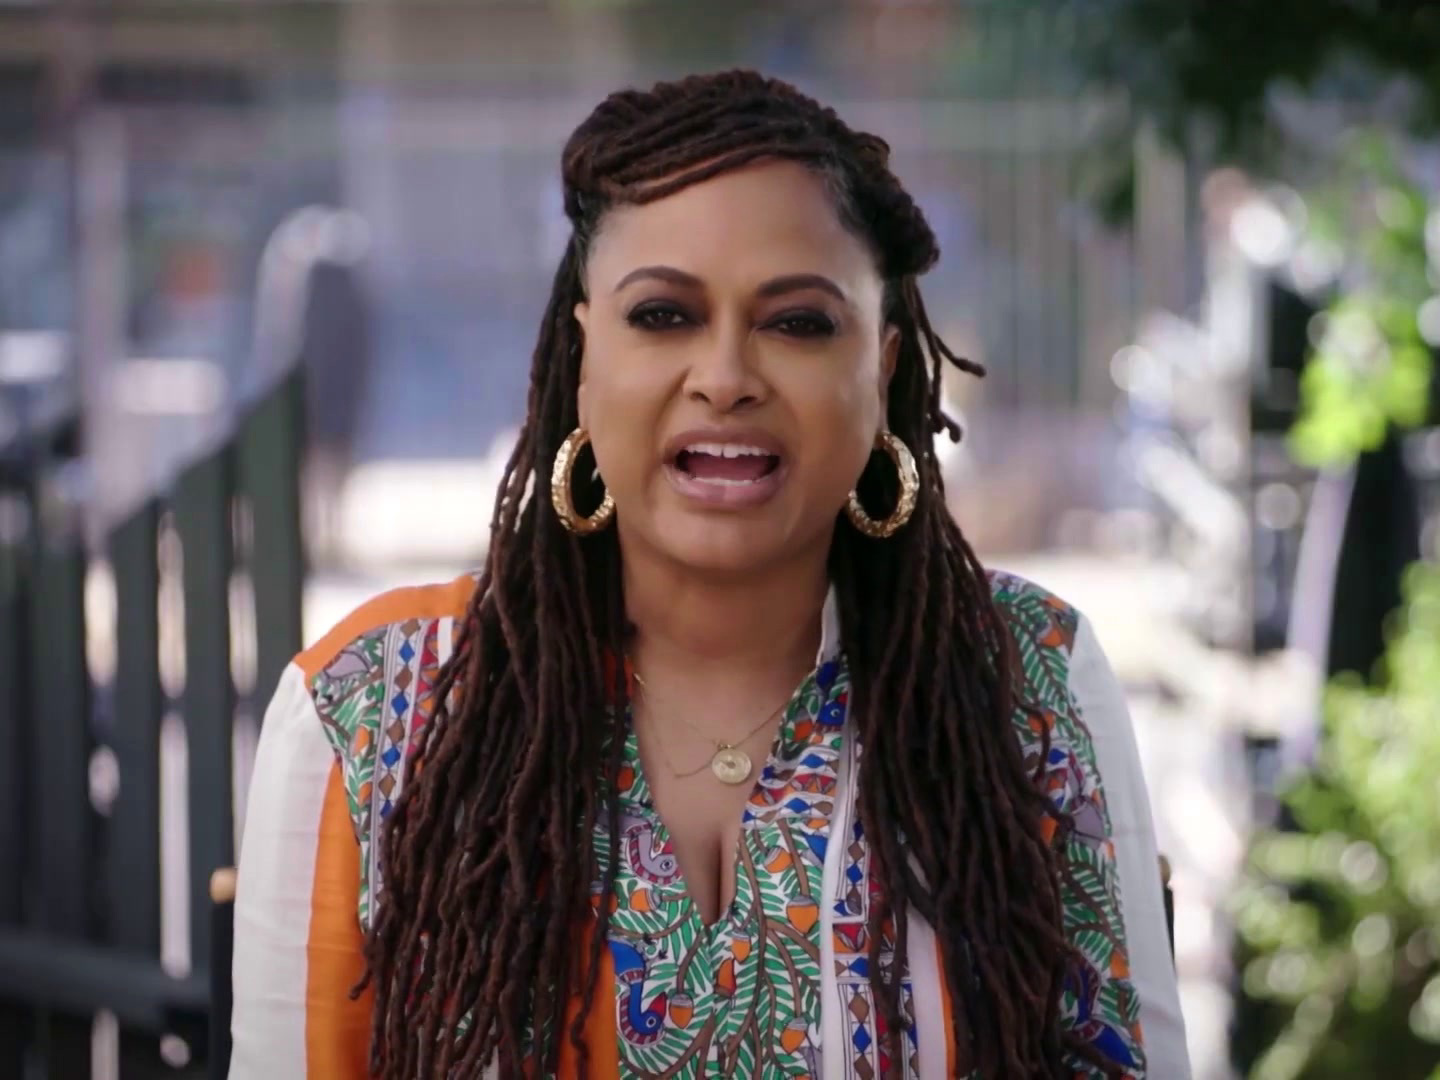 Cherish The Day: Ava DuVernay On The Importance Of Gender Parity Among 'Cherish The Day' Crew